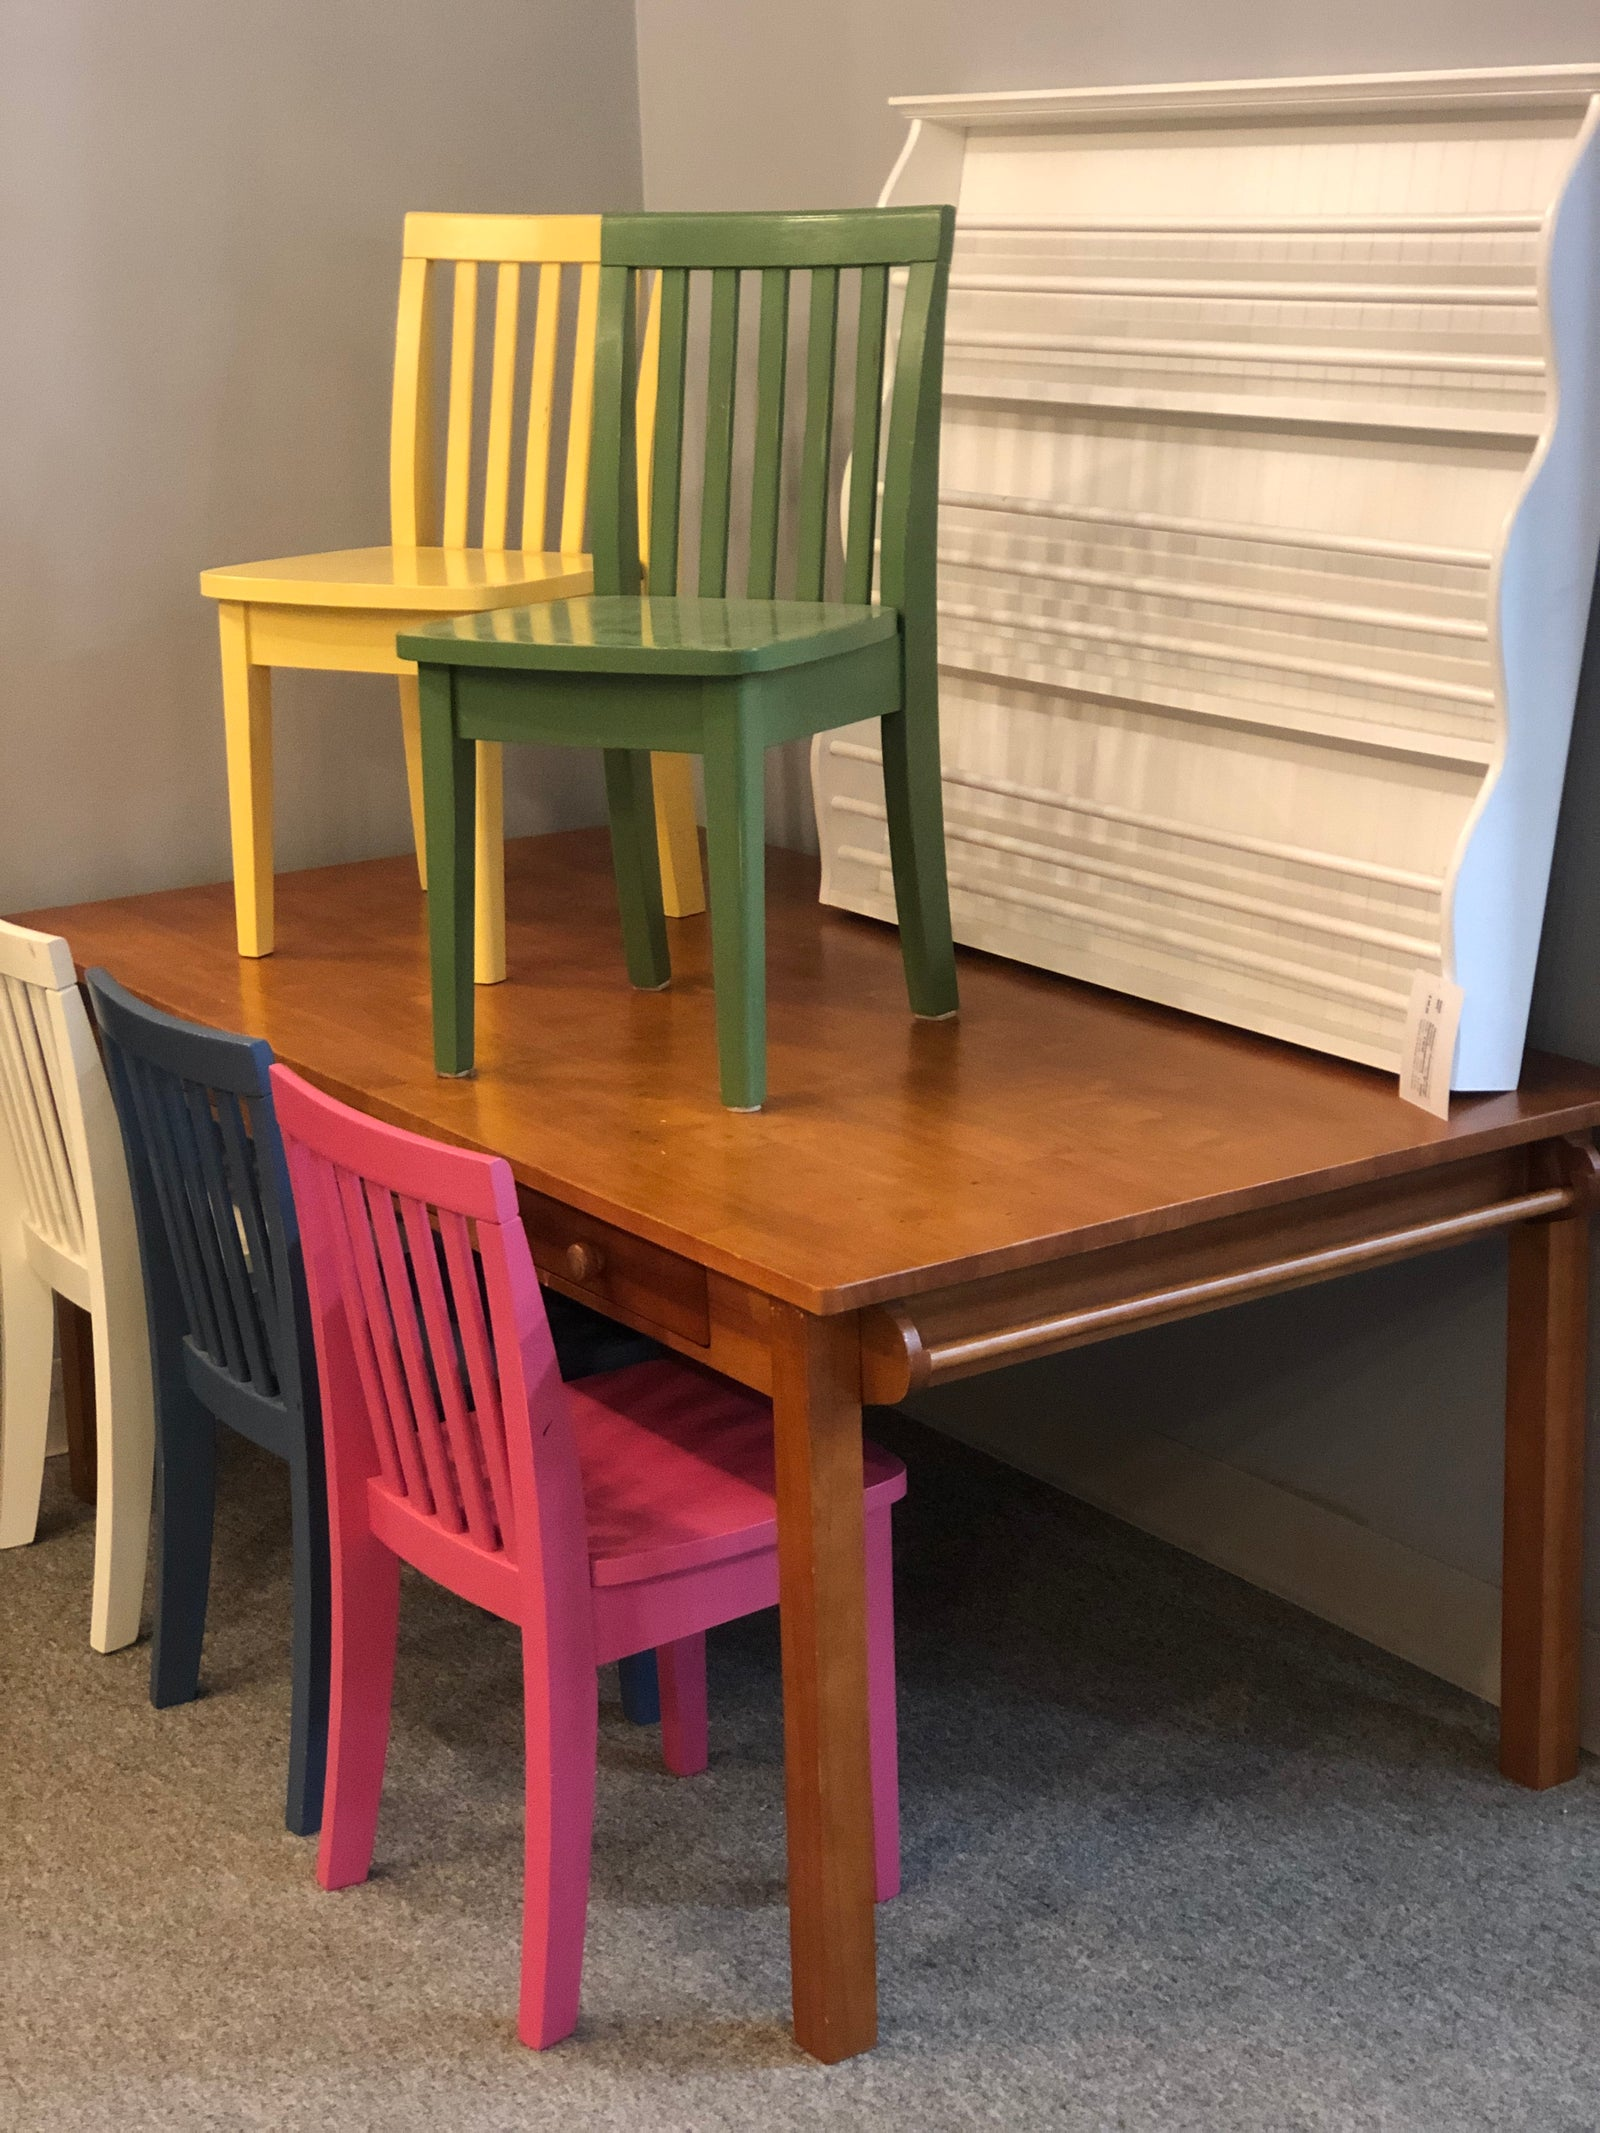 Children Craft Table and 5 Chairs